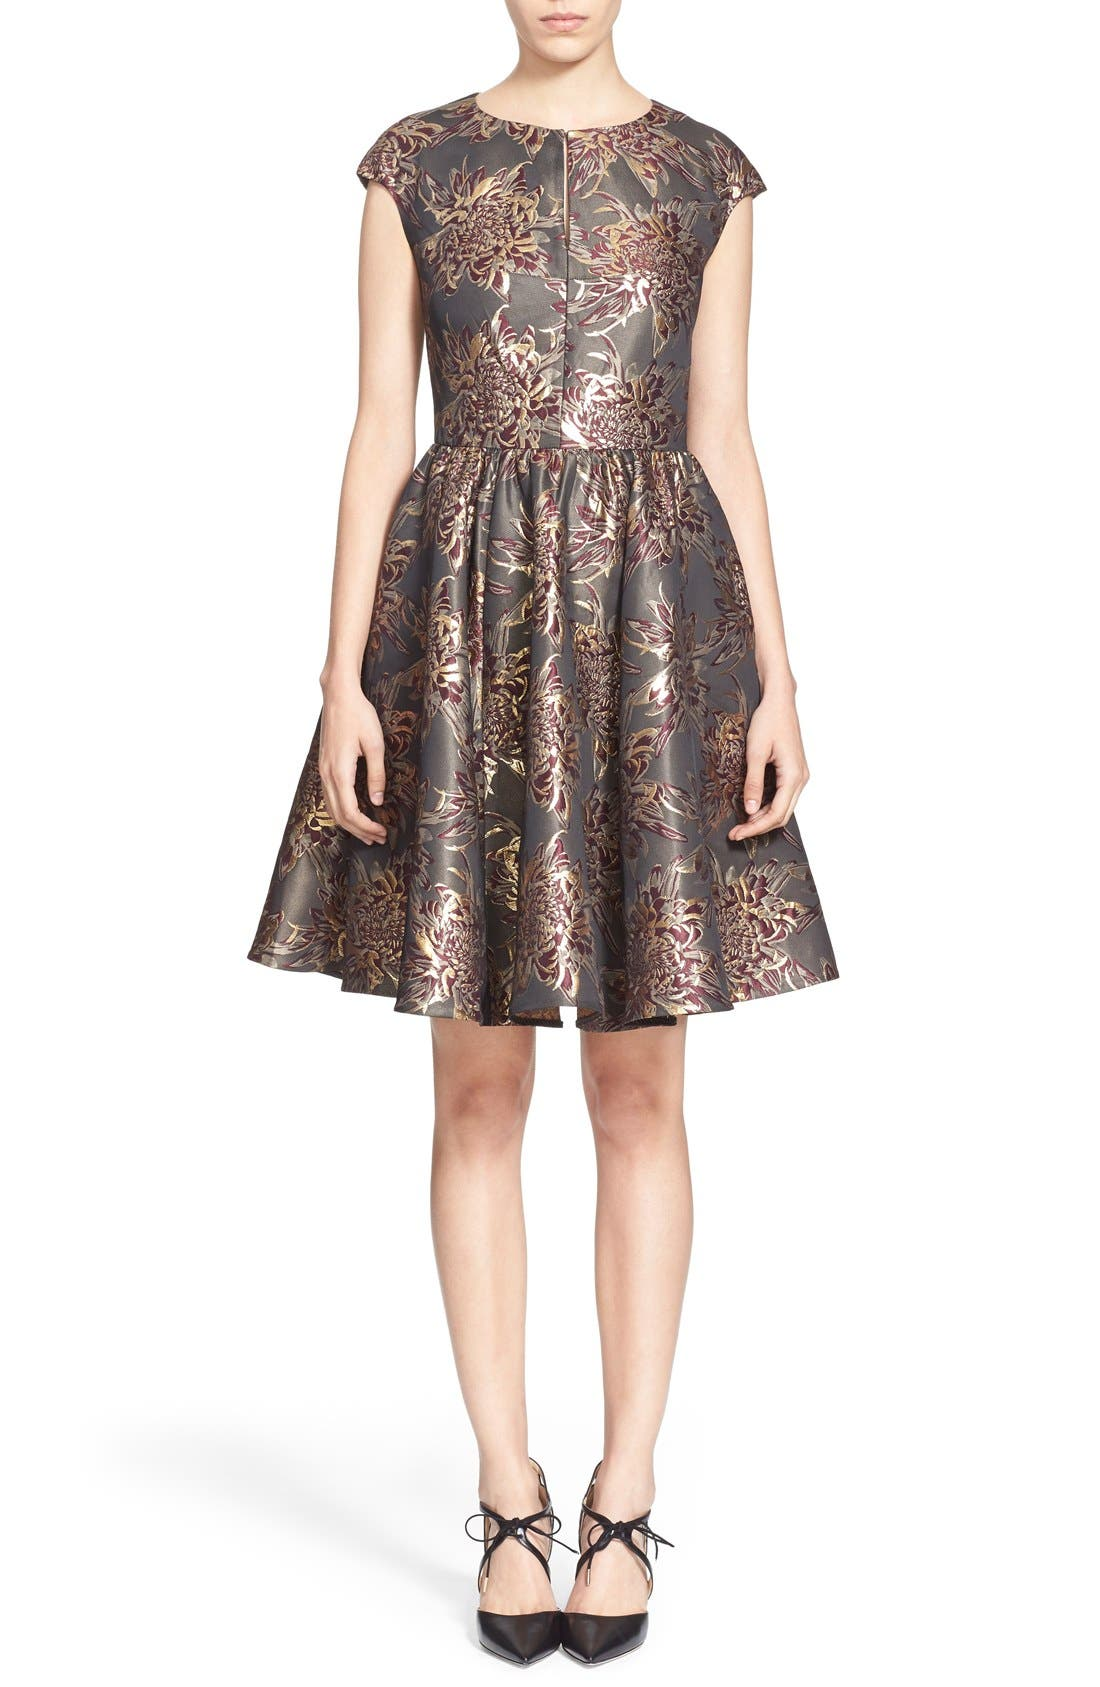 Main Image - Ted Baker London 'Laurey' Metallic Floral Jacquard Fit & Flare Dress